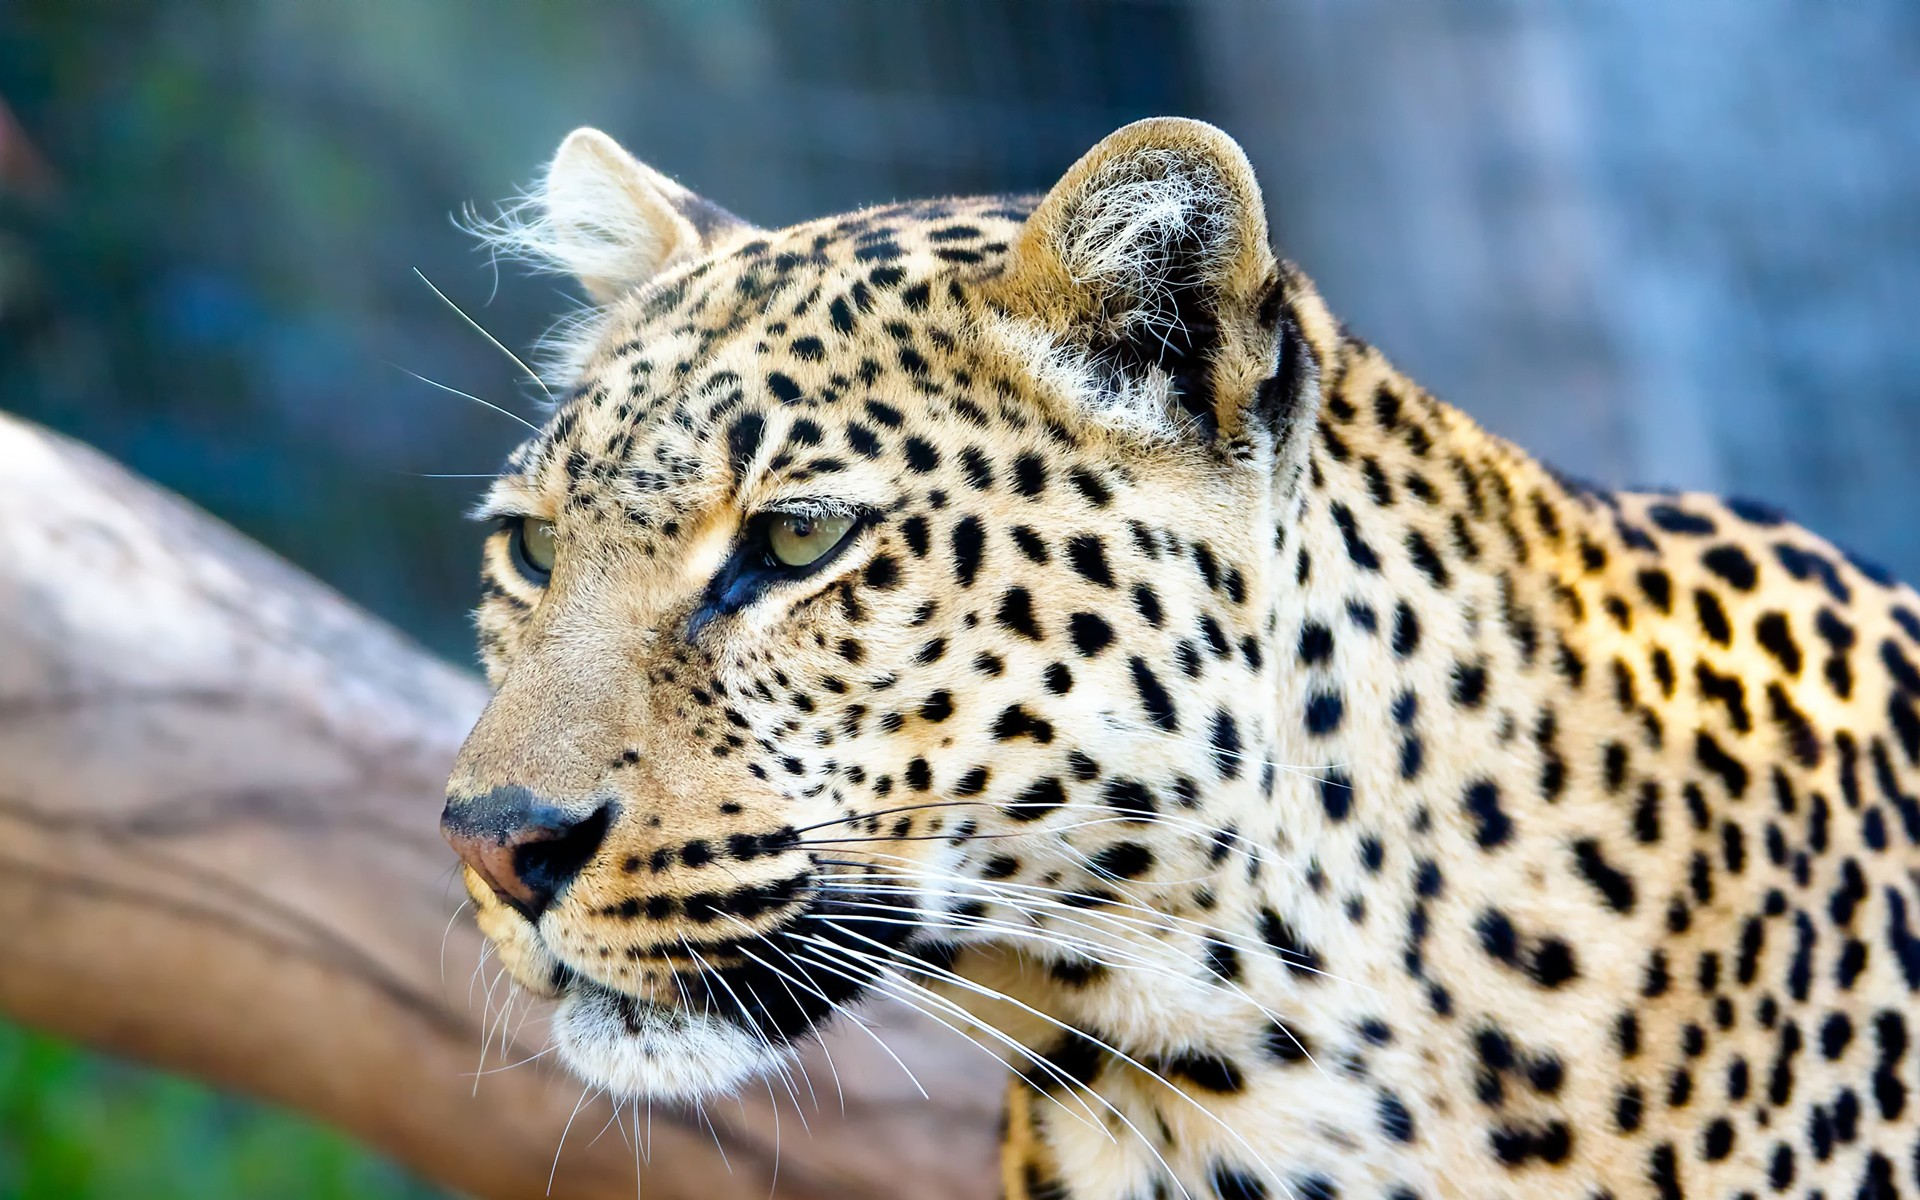 Photos of leopards in the wild.